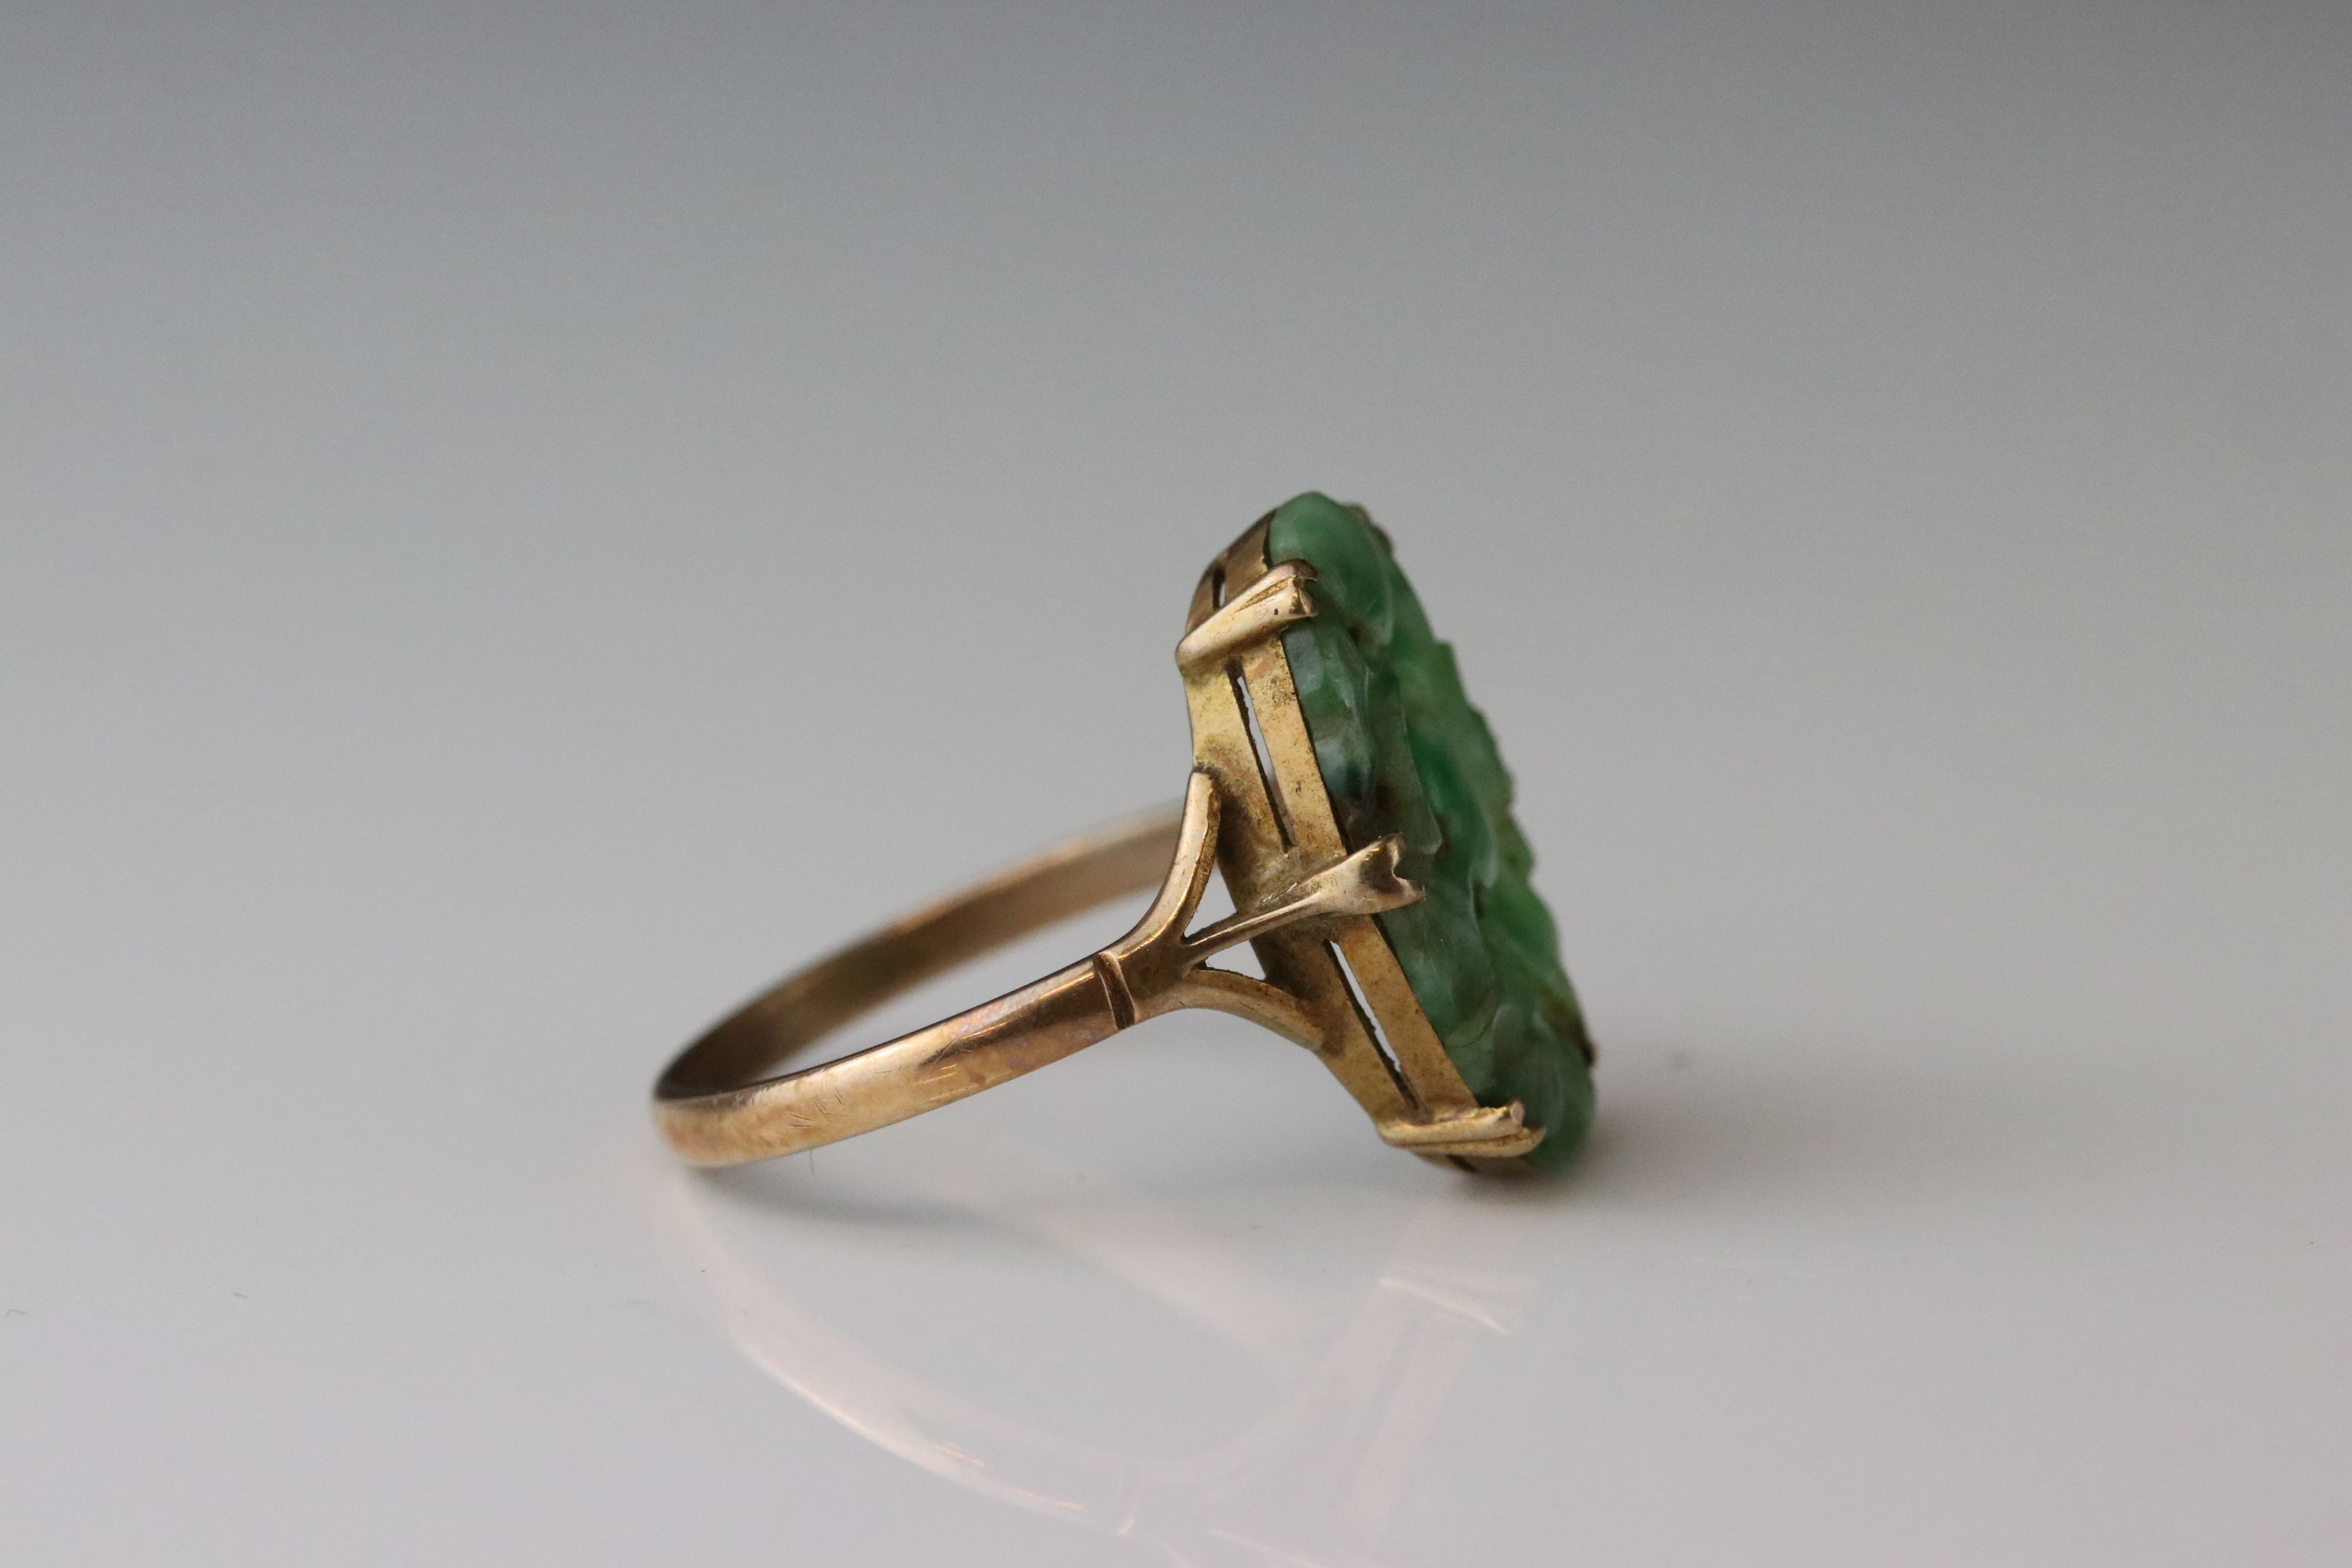 Carved jade 9ct yellow gold ring, the oval pierced carved jade measuring approx 18mm x 11.5mm, - Image 4 of 5